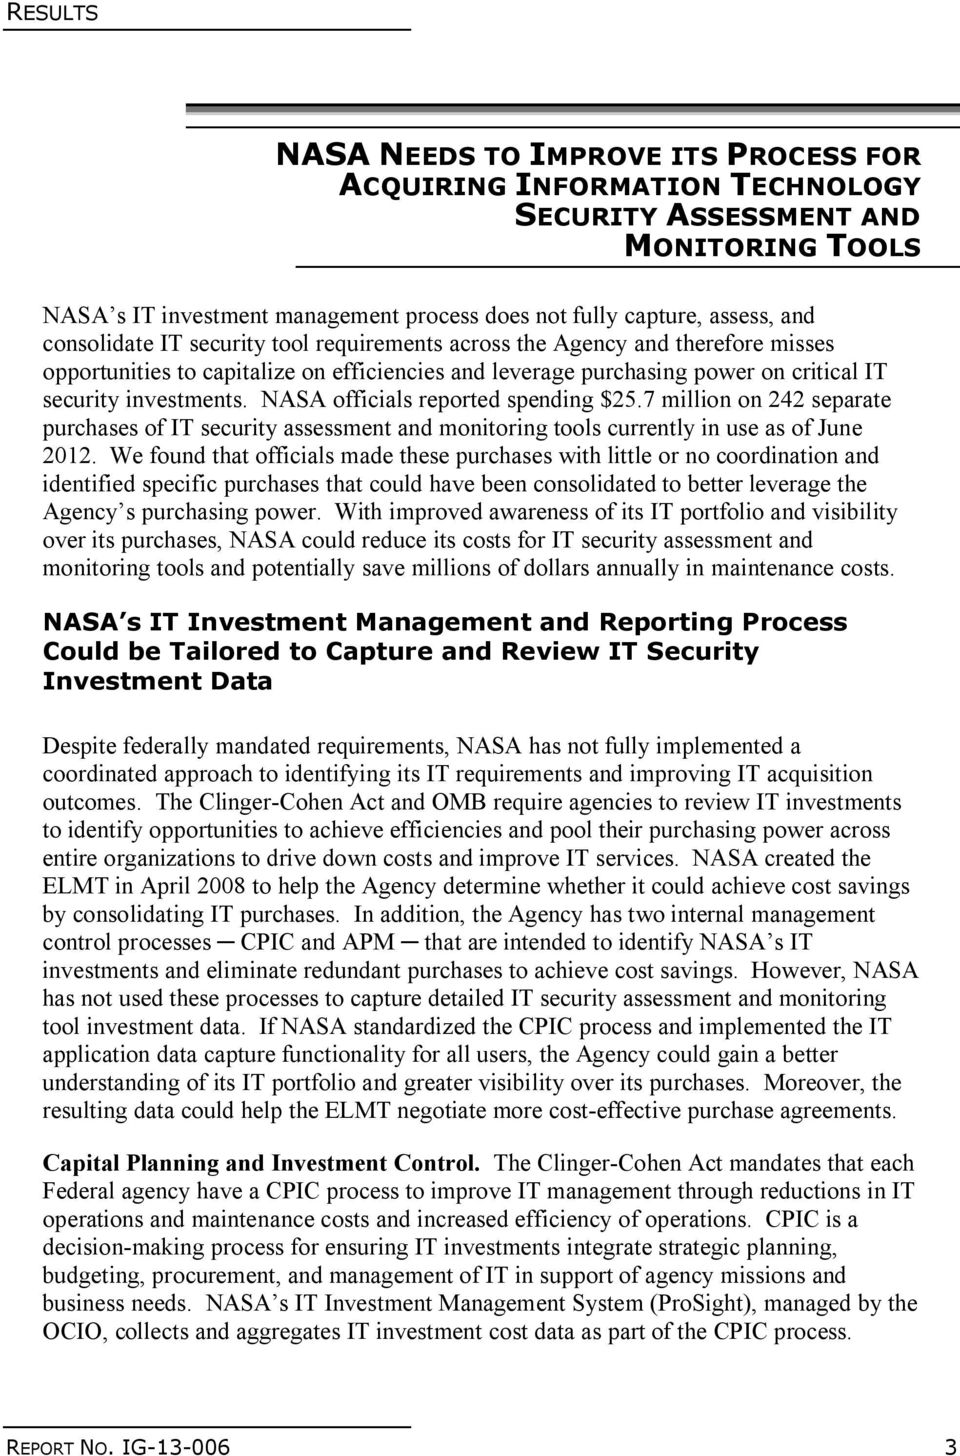 NASA officials reported spending $25.7 million on 242 separate purchases of IT security assessment and monitoring tools currently in use as of June 2012.